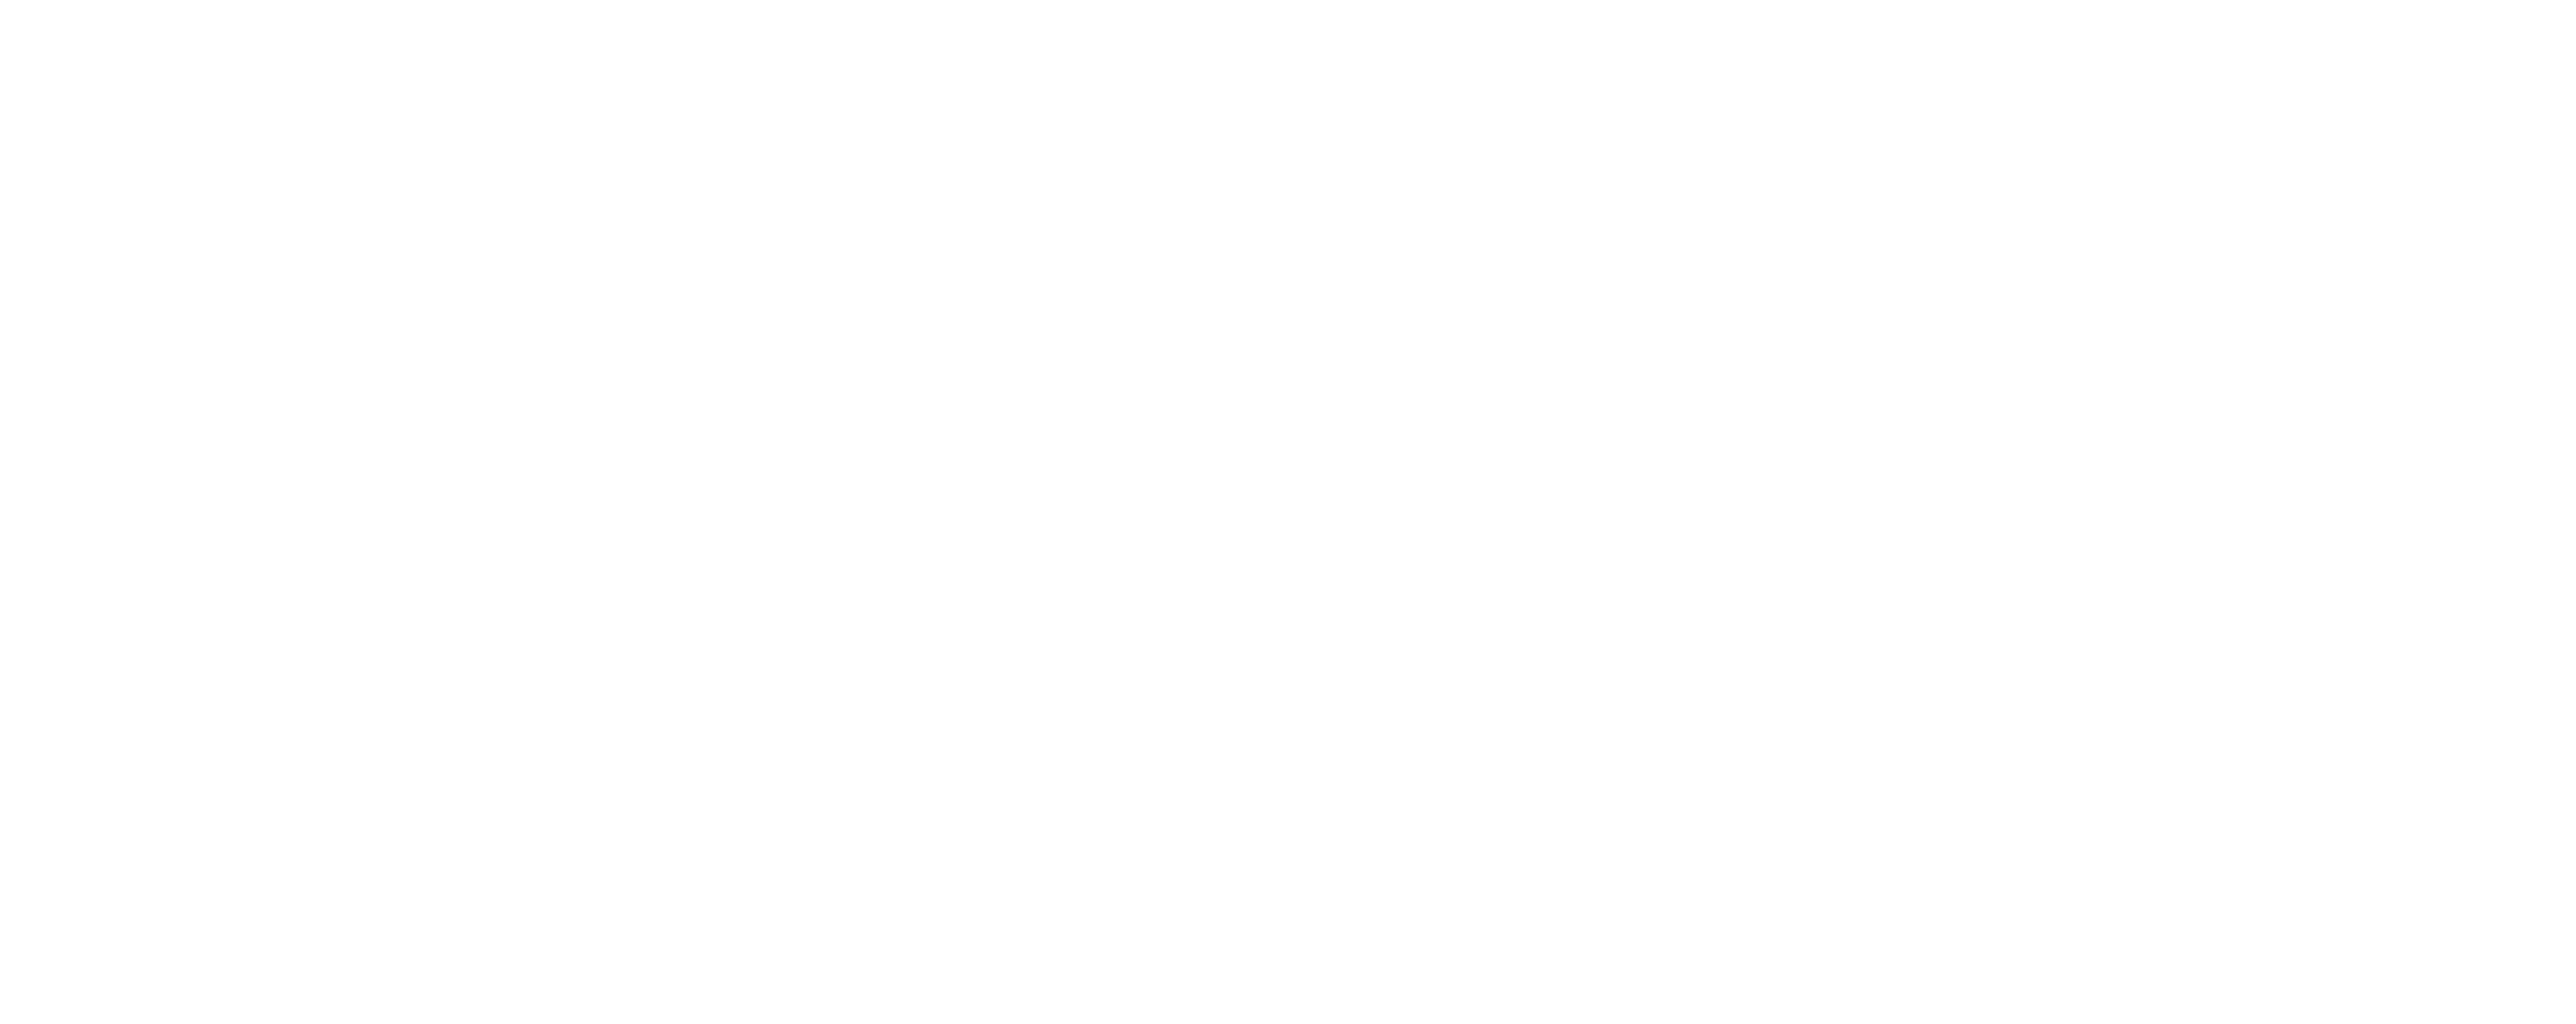 Outlined Icons